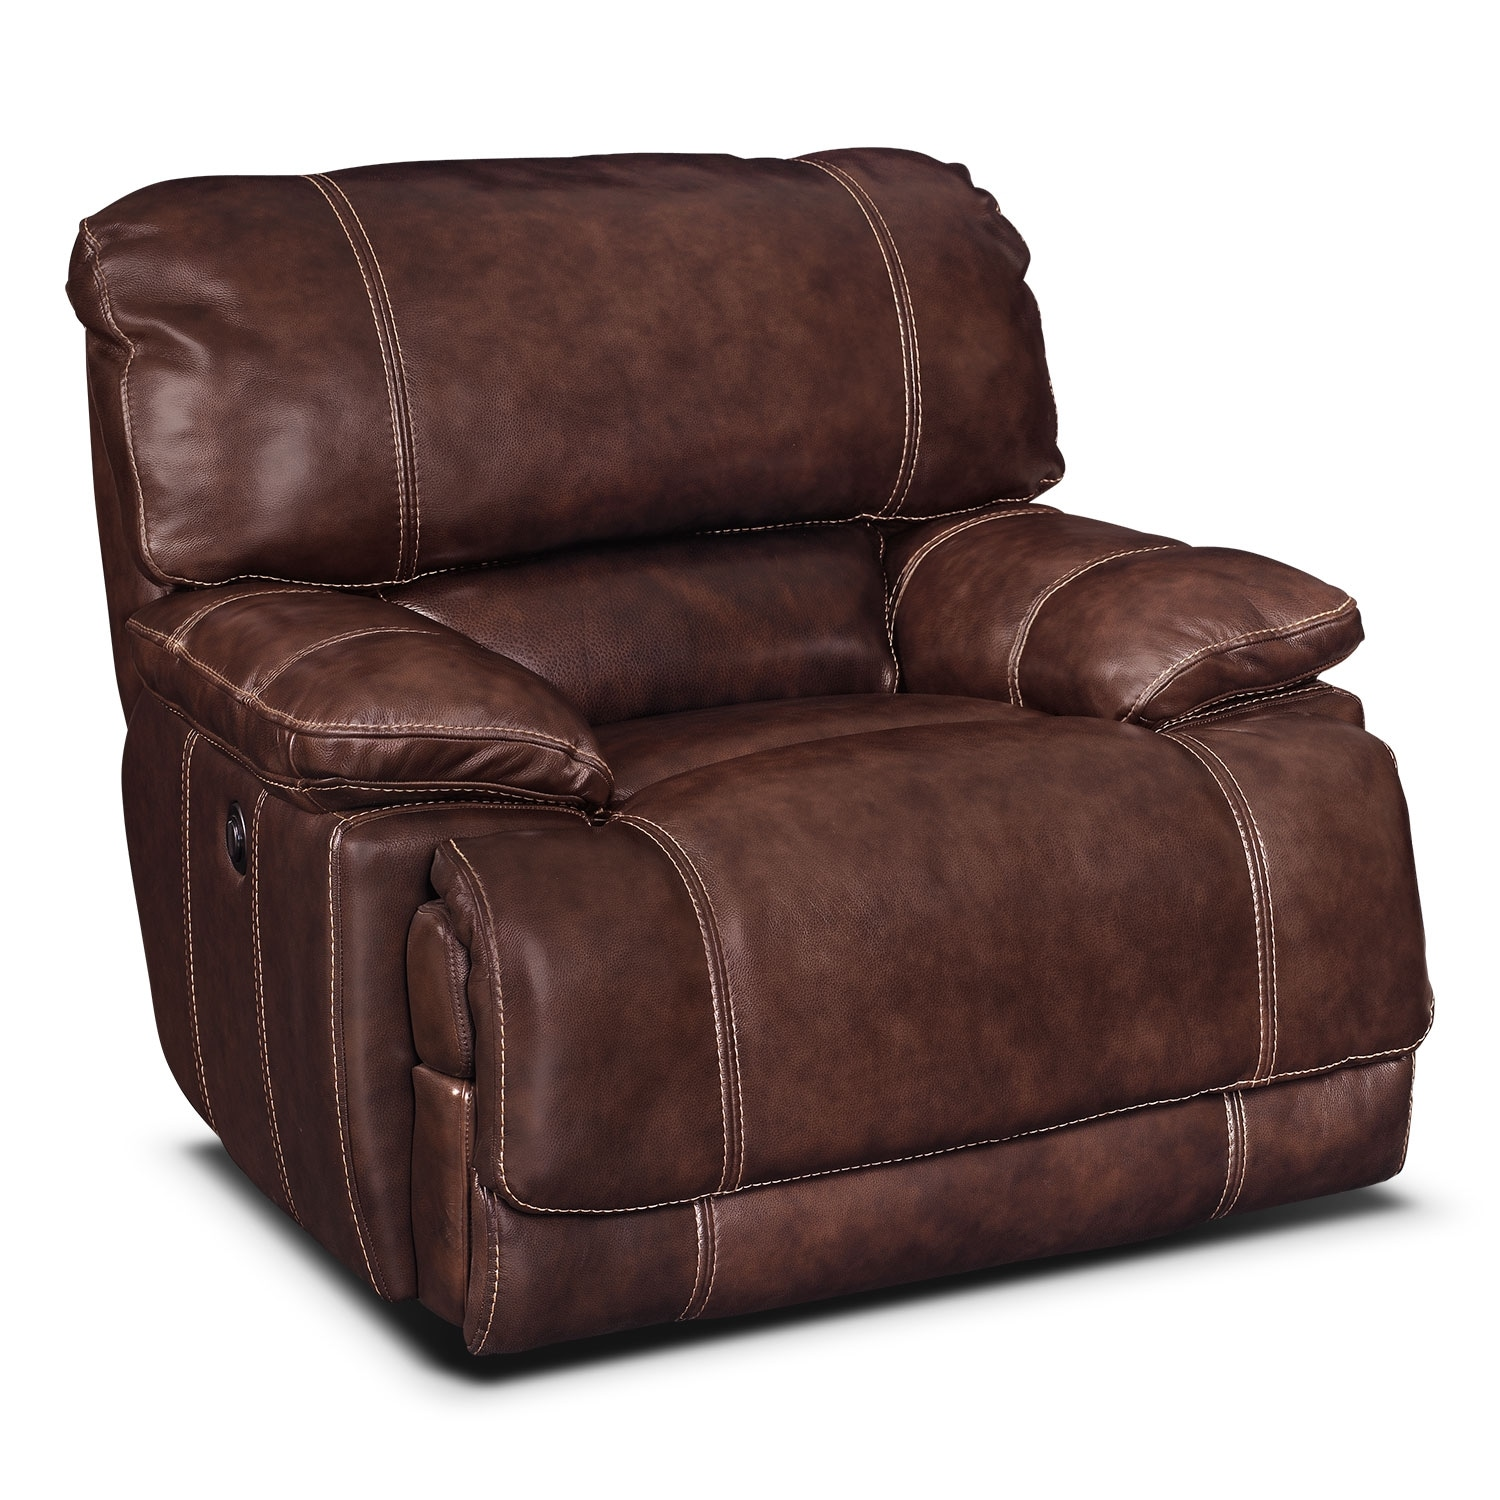 Living Room Furniture - St. Malo Power Recliner